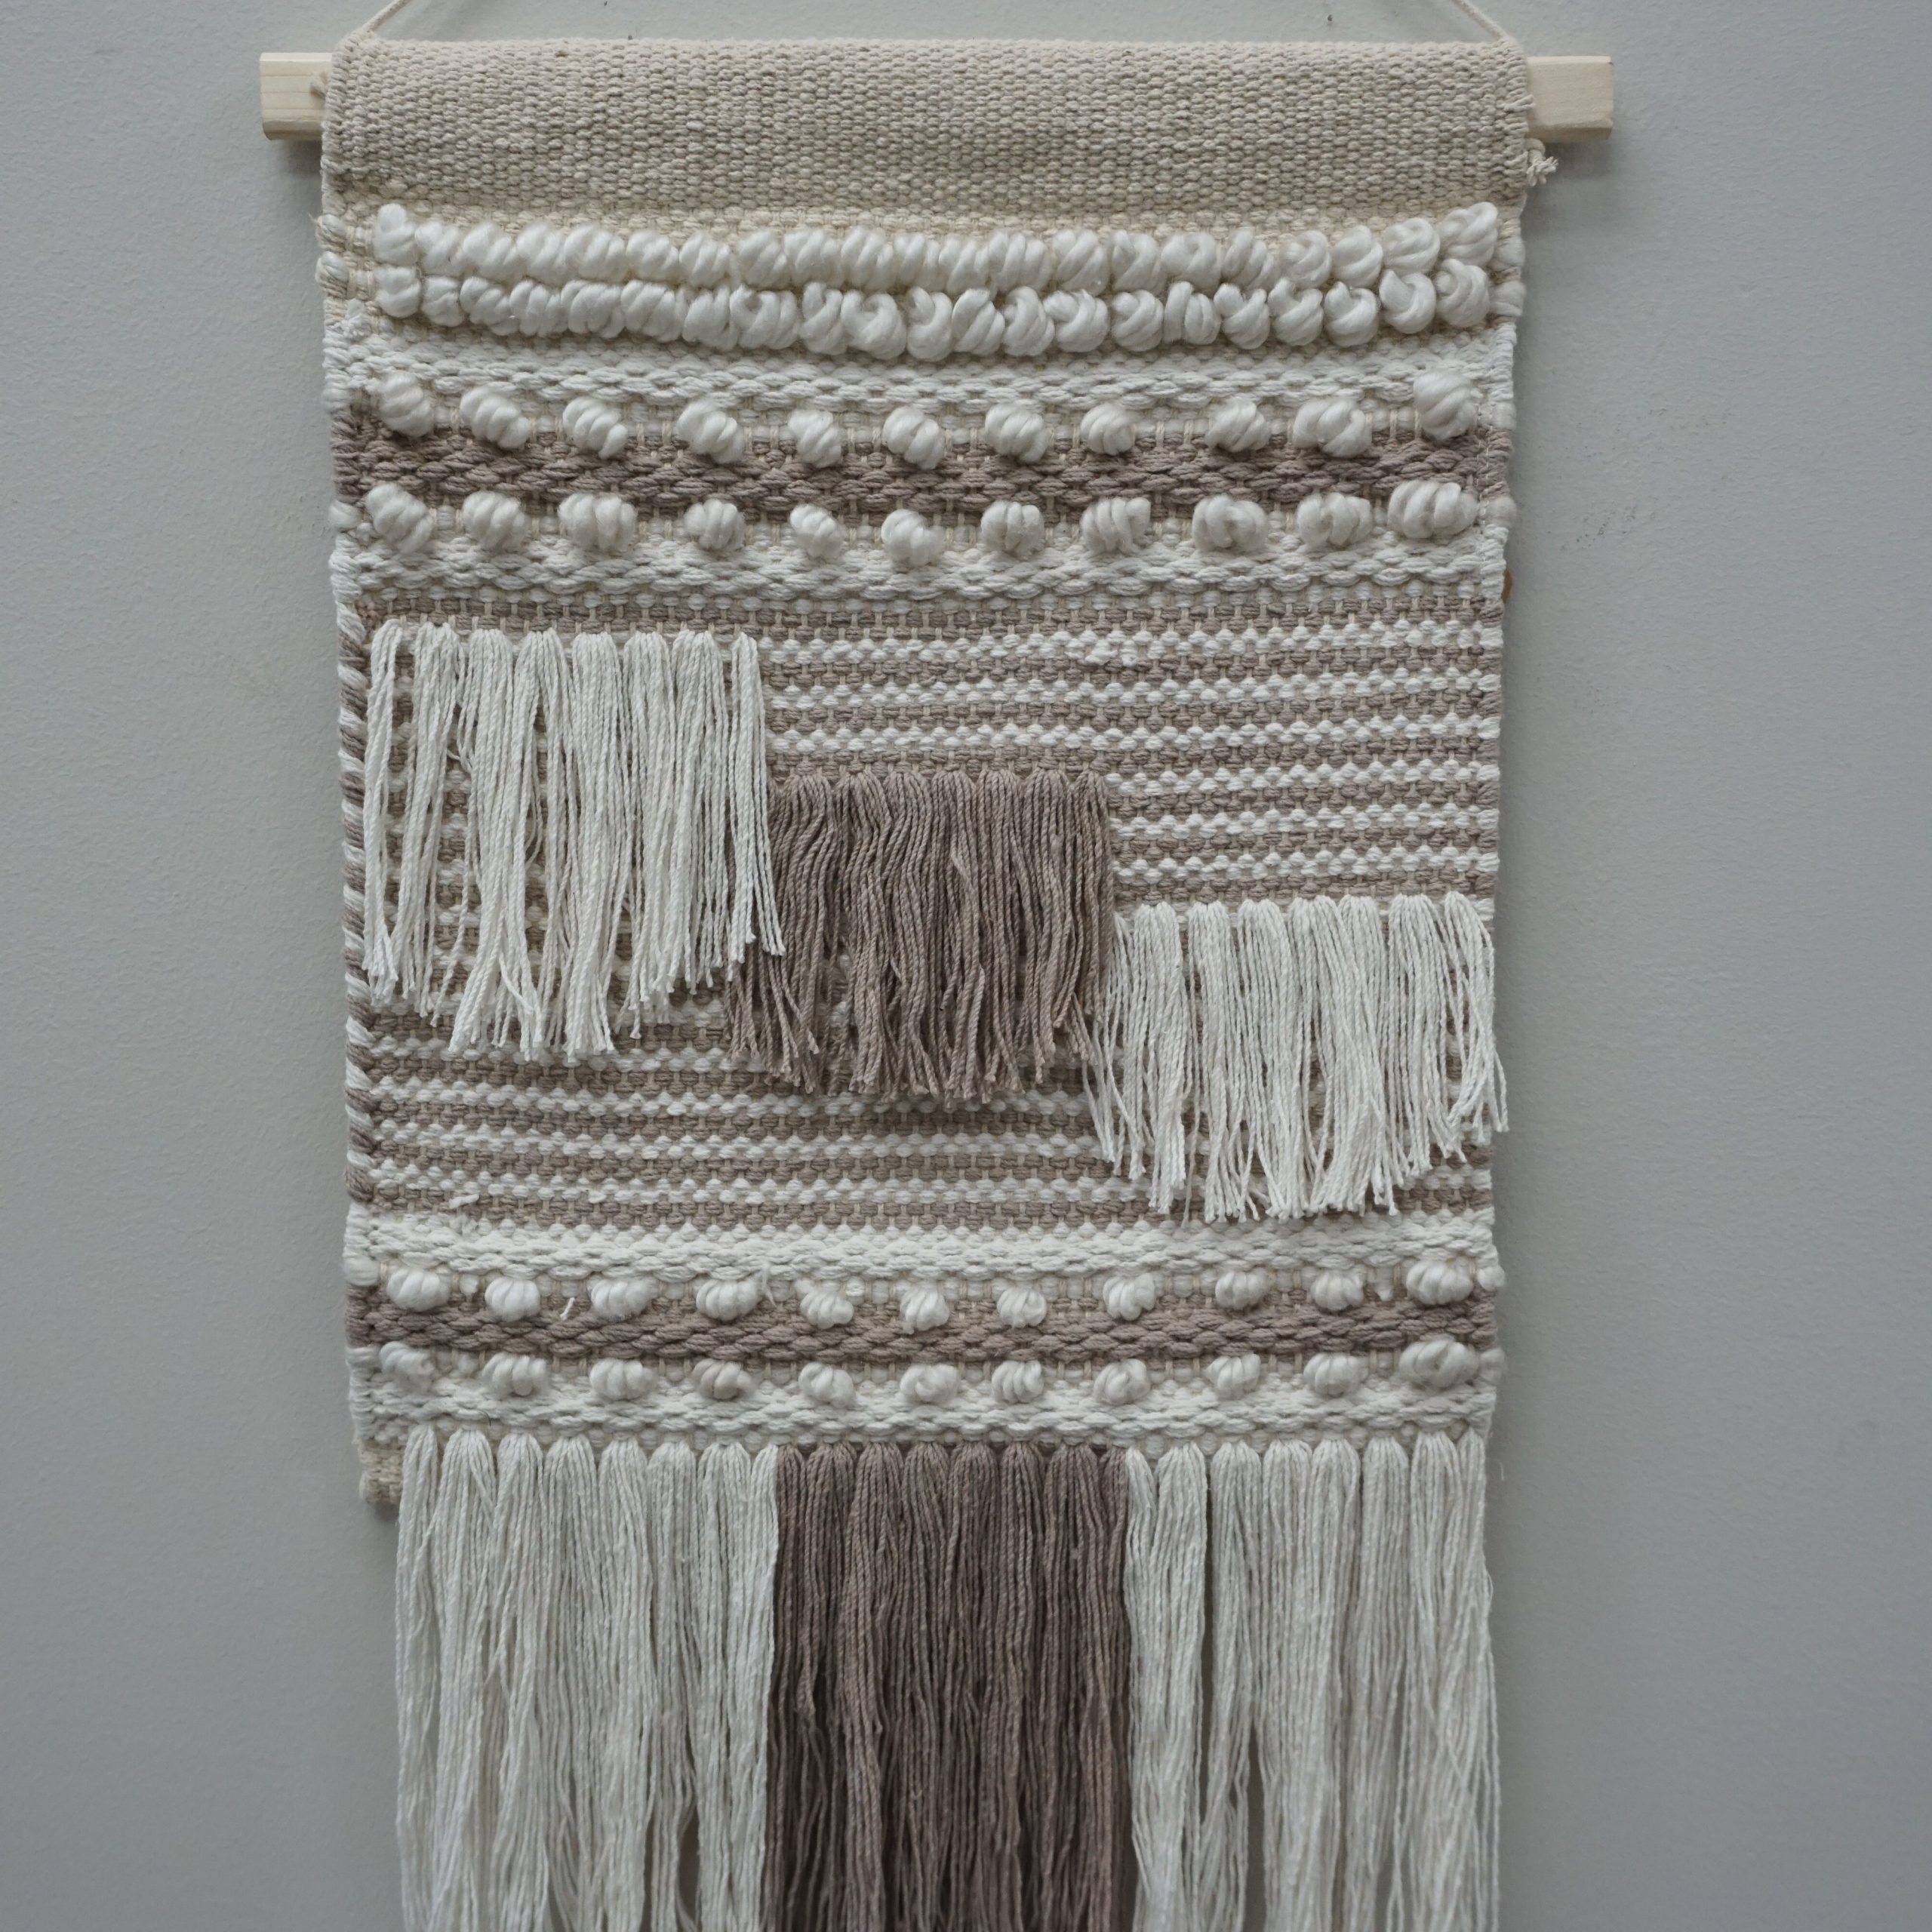 Blended Fabric Saiful Wall Hangings With Rod Within Popular Dakota Fields Wool Wall Hanging With Hanging Accessories And (View 11 of 20)